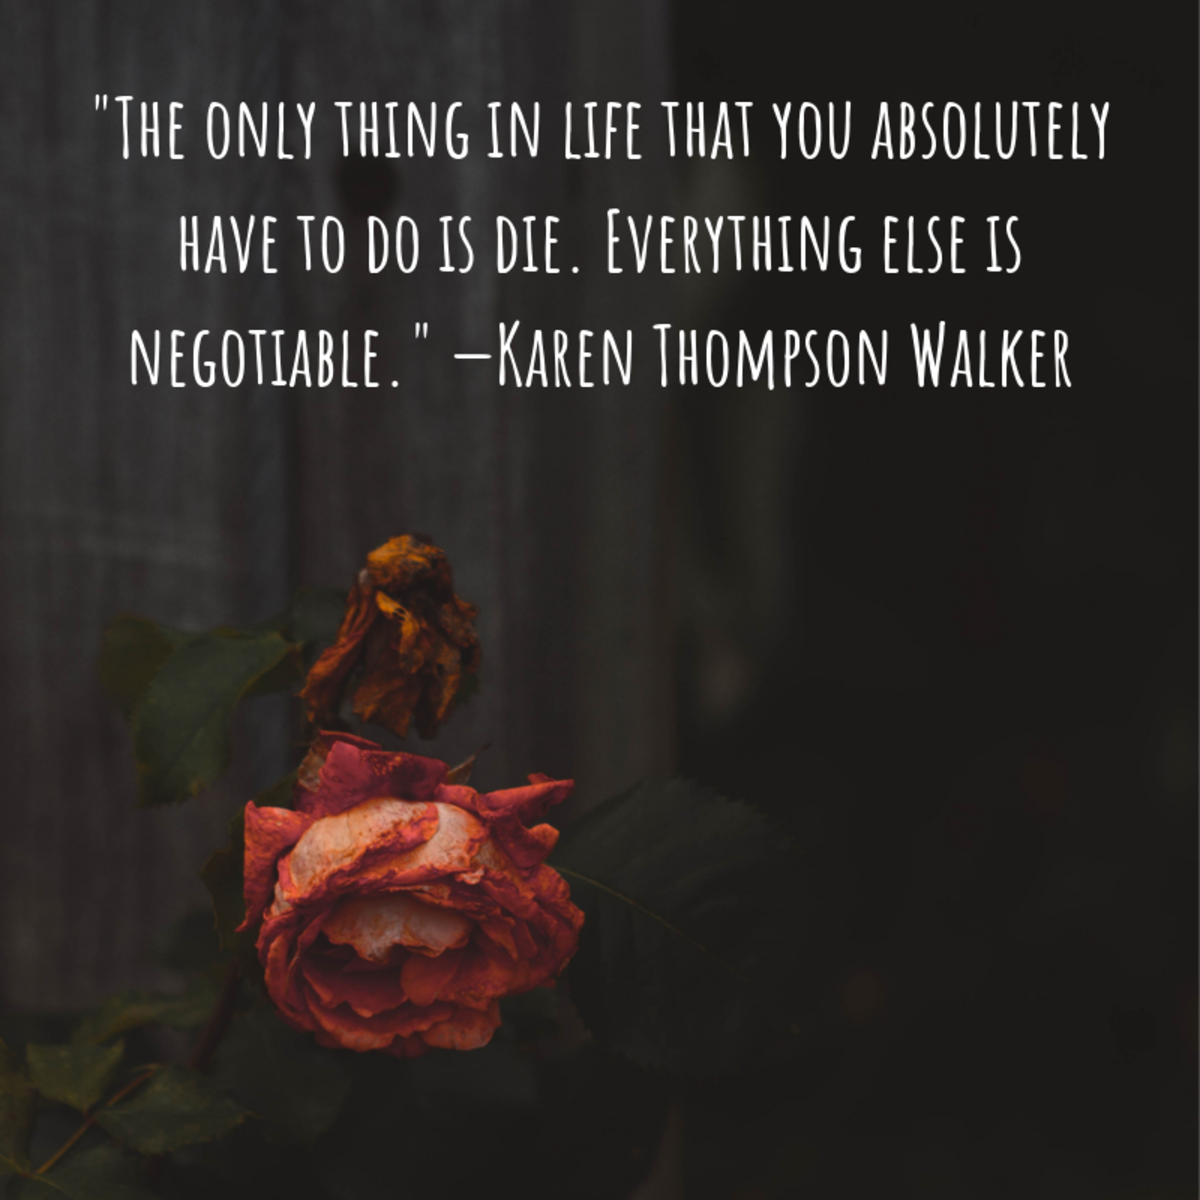 """The only thing in life that you absolutely have to do is die. Everything else is negotiable."" —Karen Thompson Walker"